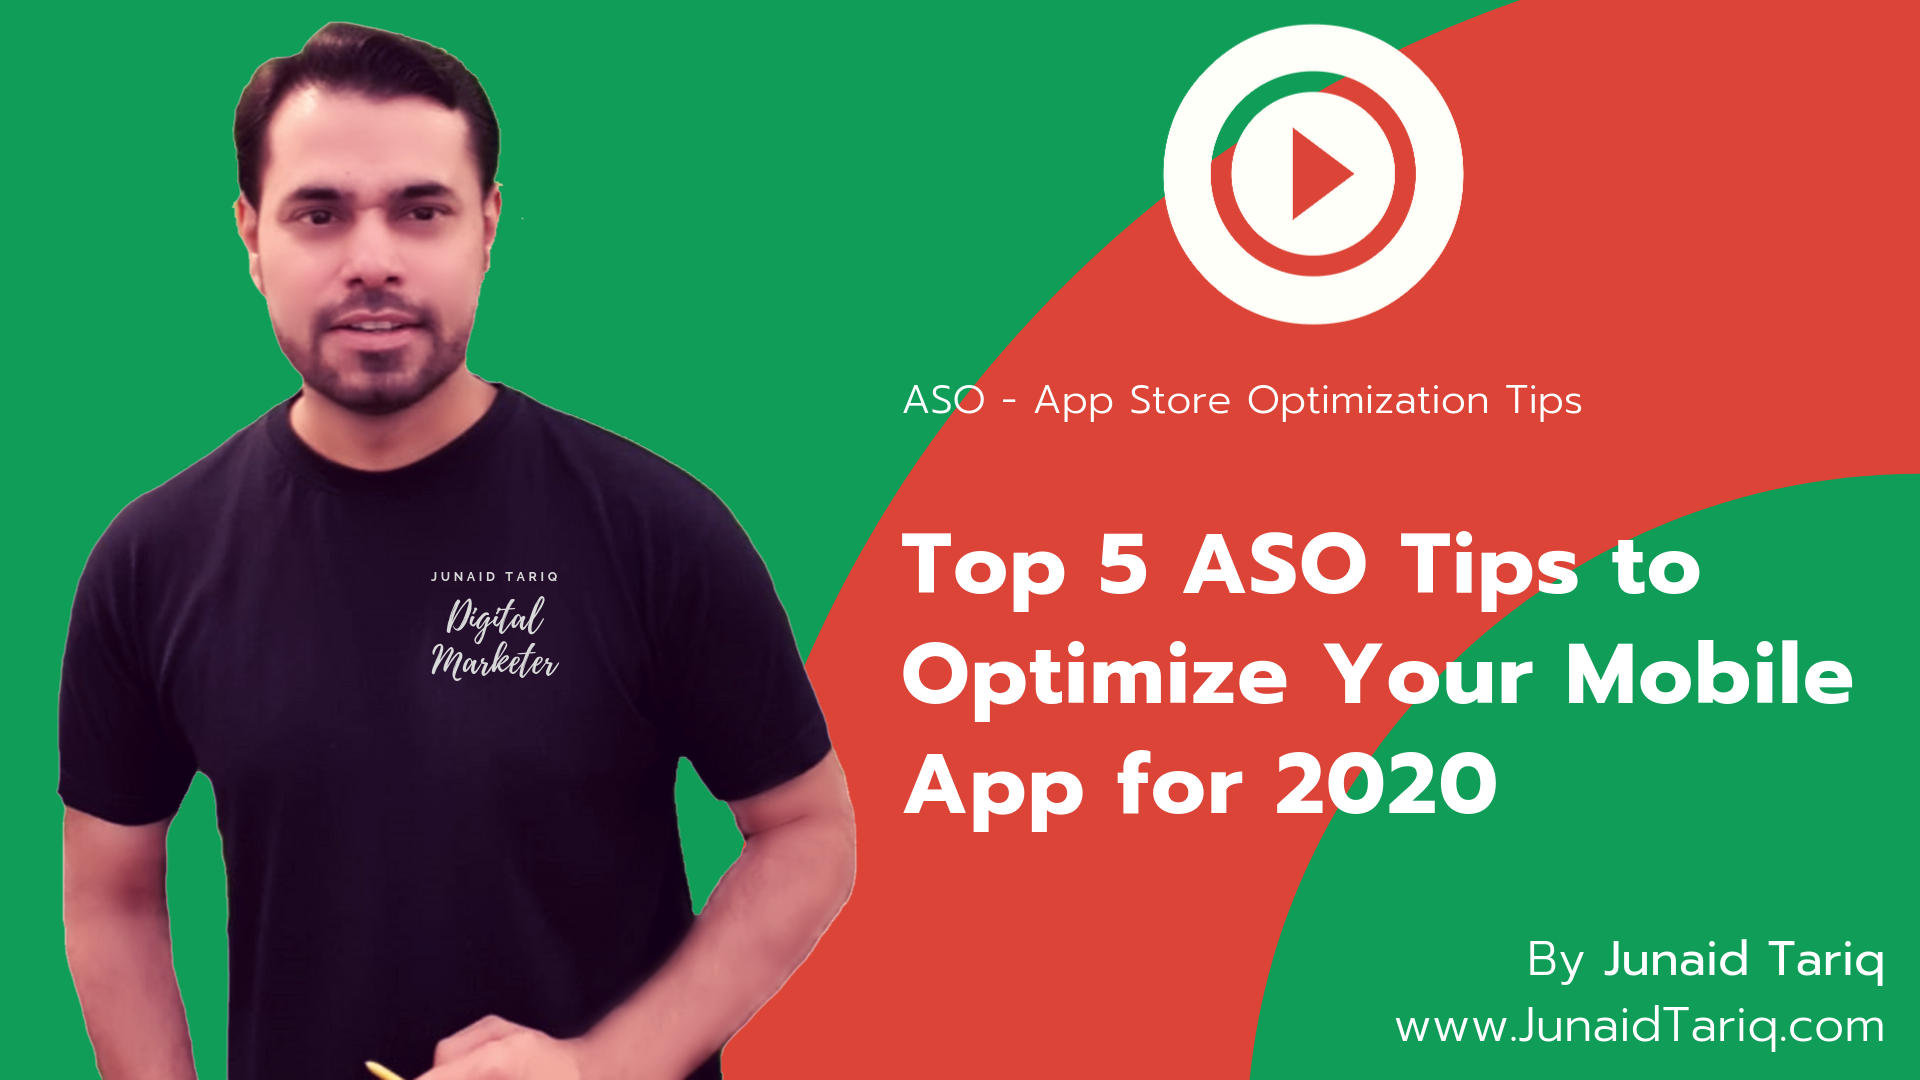 Top 5 ASO Tips to Optimize Your Mobile App for 2020 | Junaid Tariq | ASO Tips | App Marketing